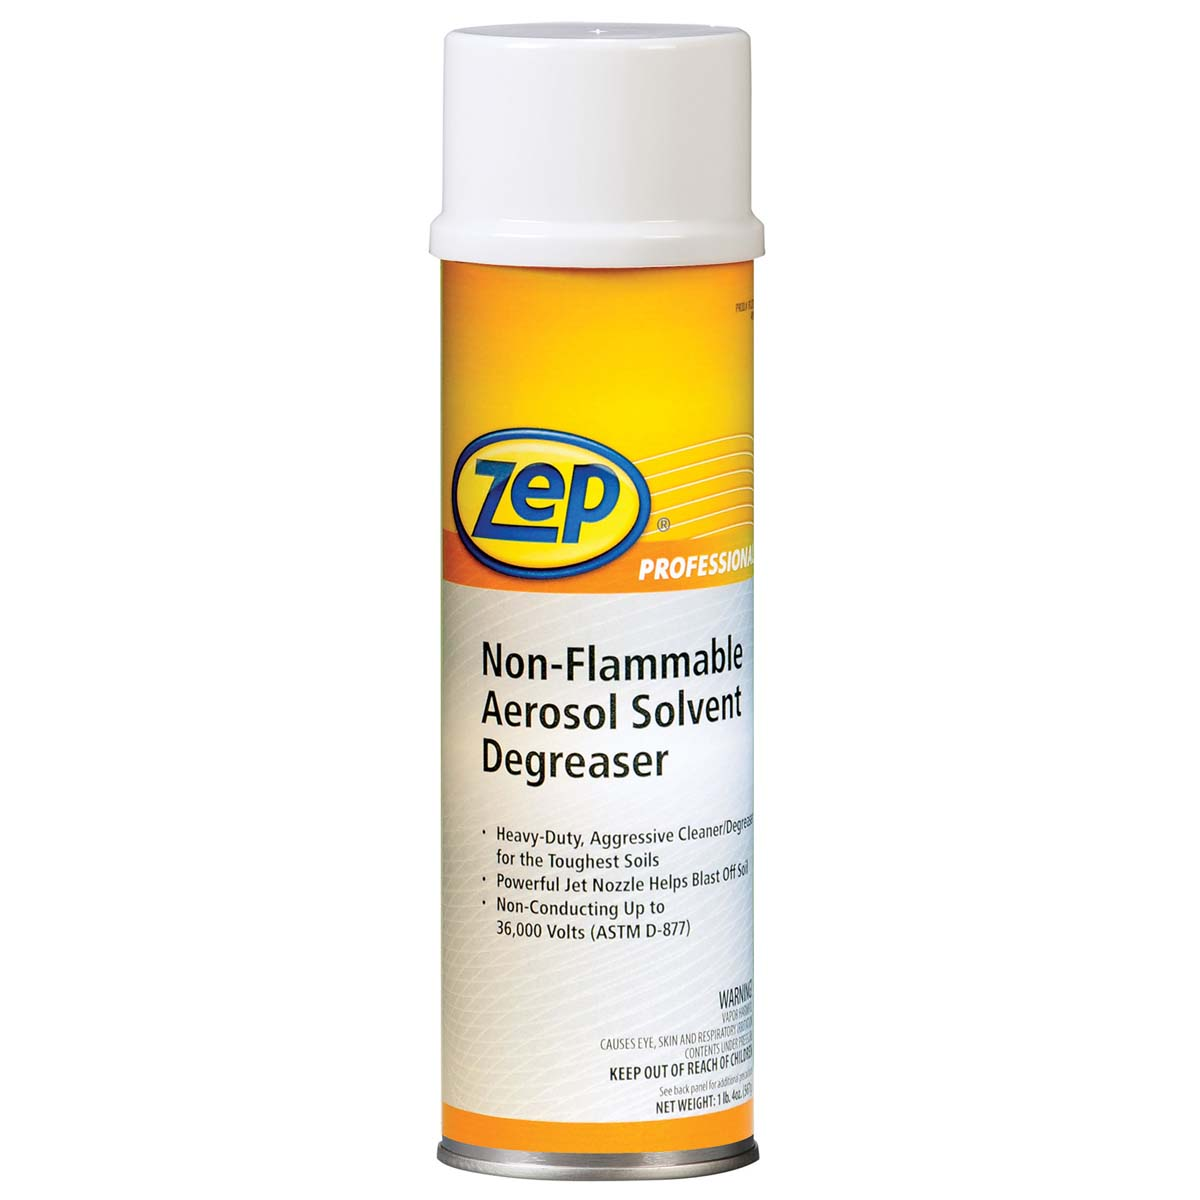 ZEP Non-Flammable Aerosol Solvent Degreaser